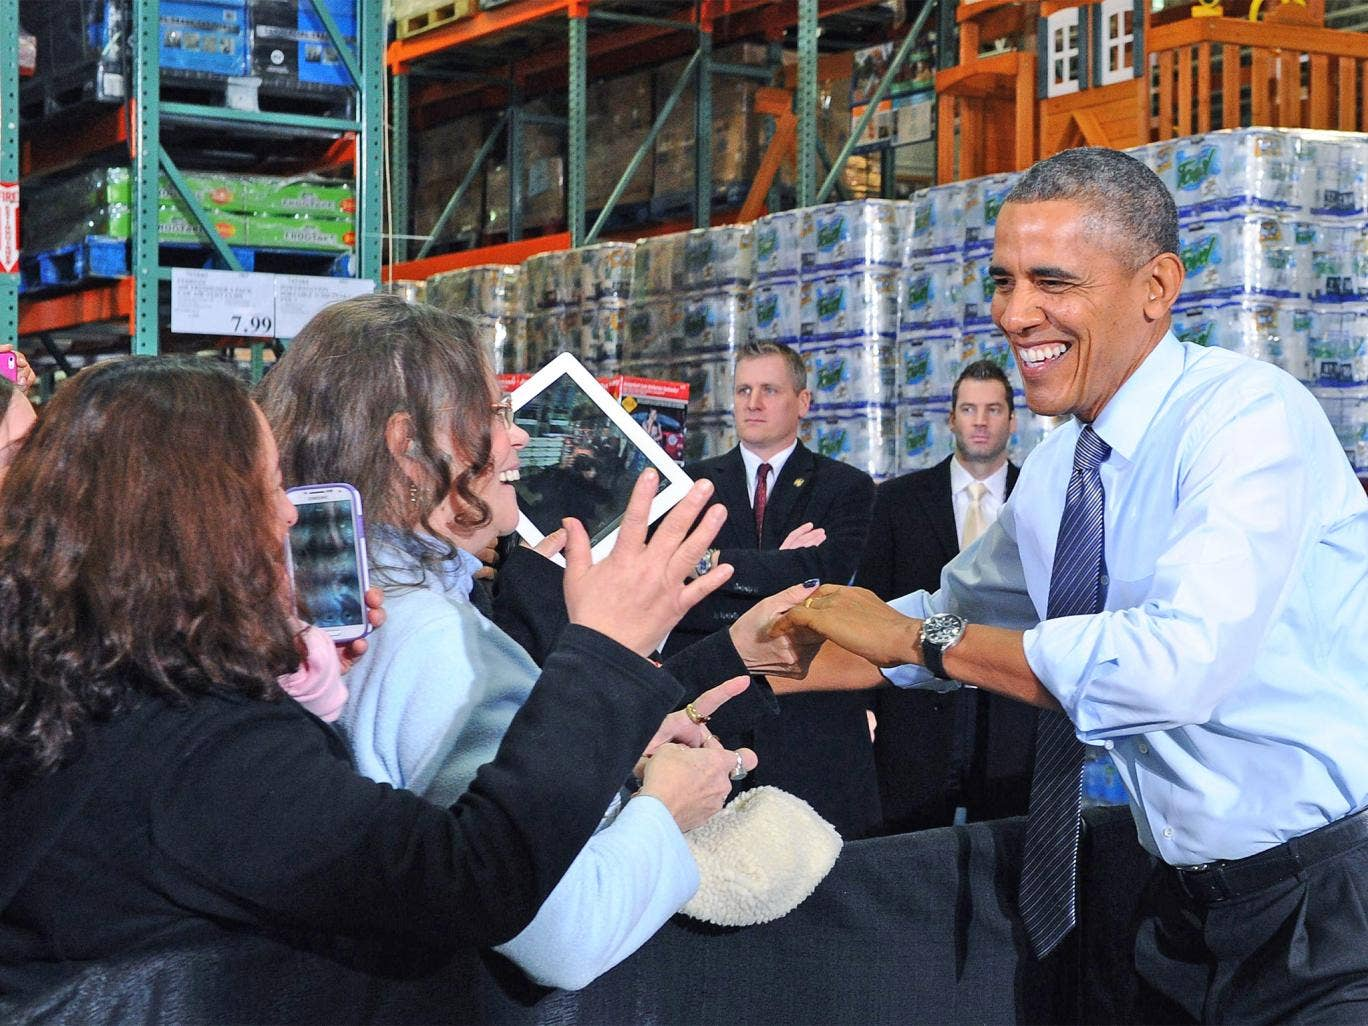 Barack Obama told a crowd at a Costco store the country was moving on